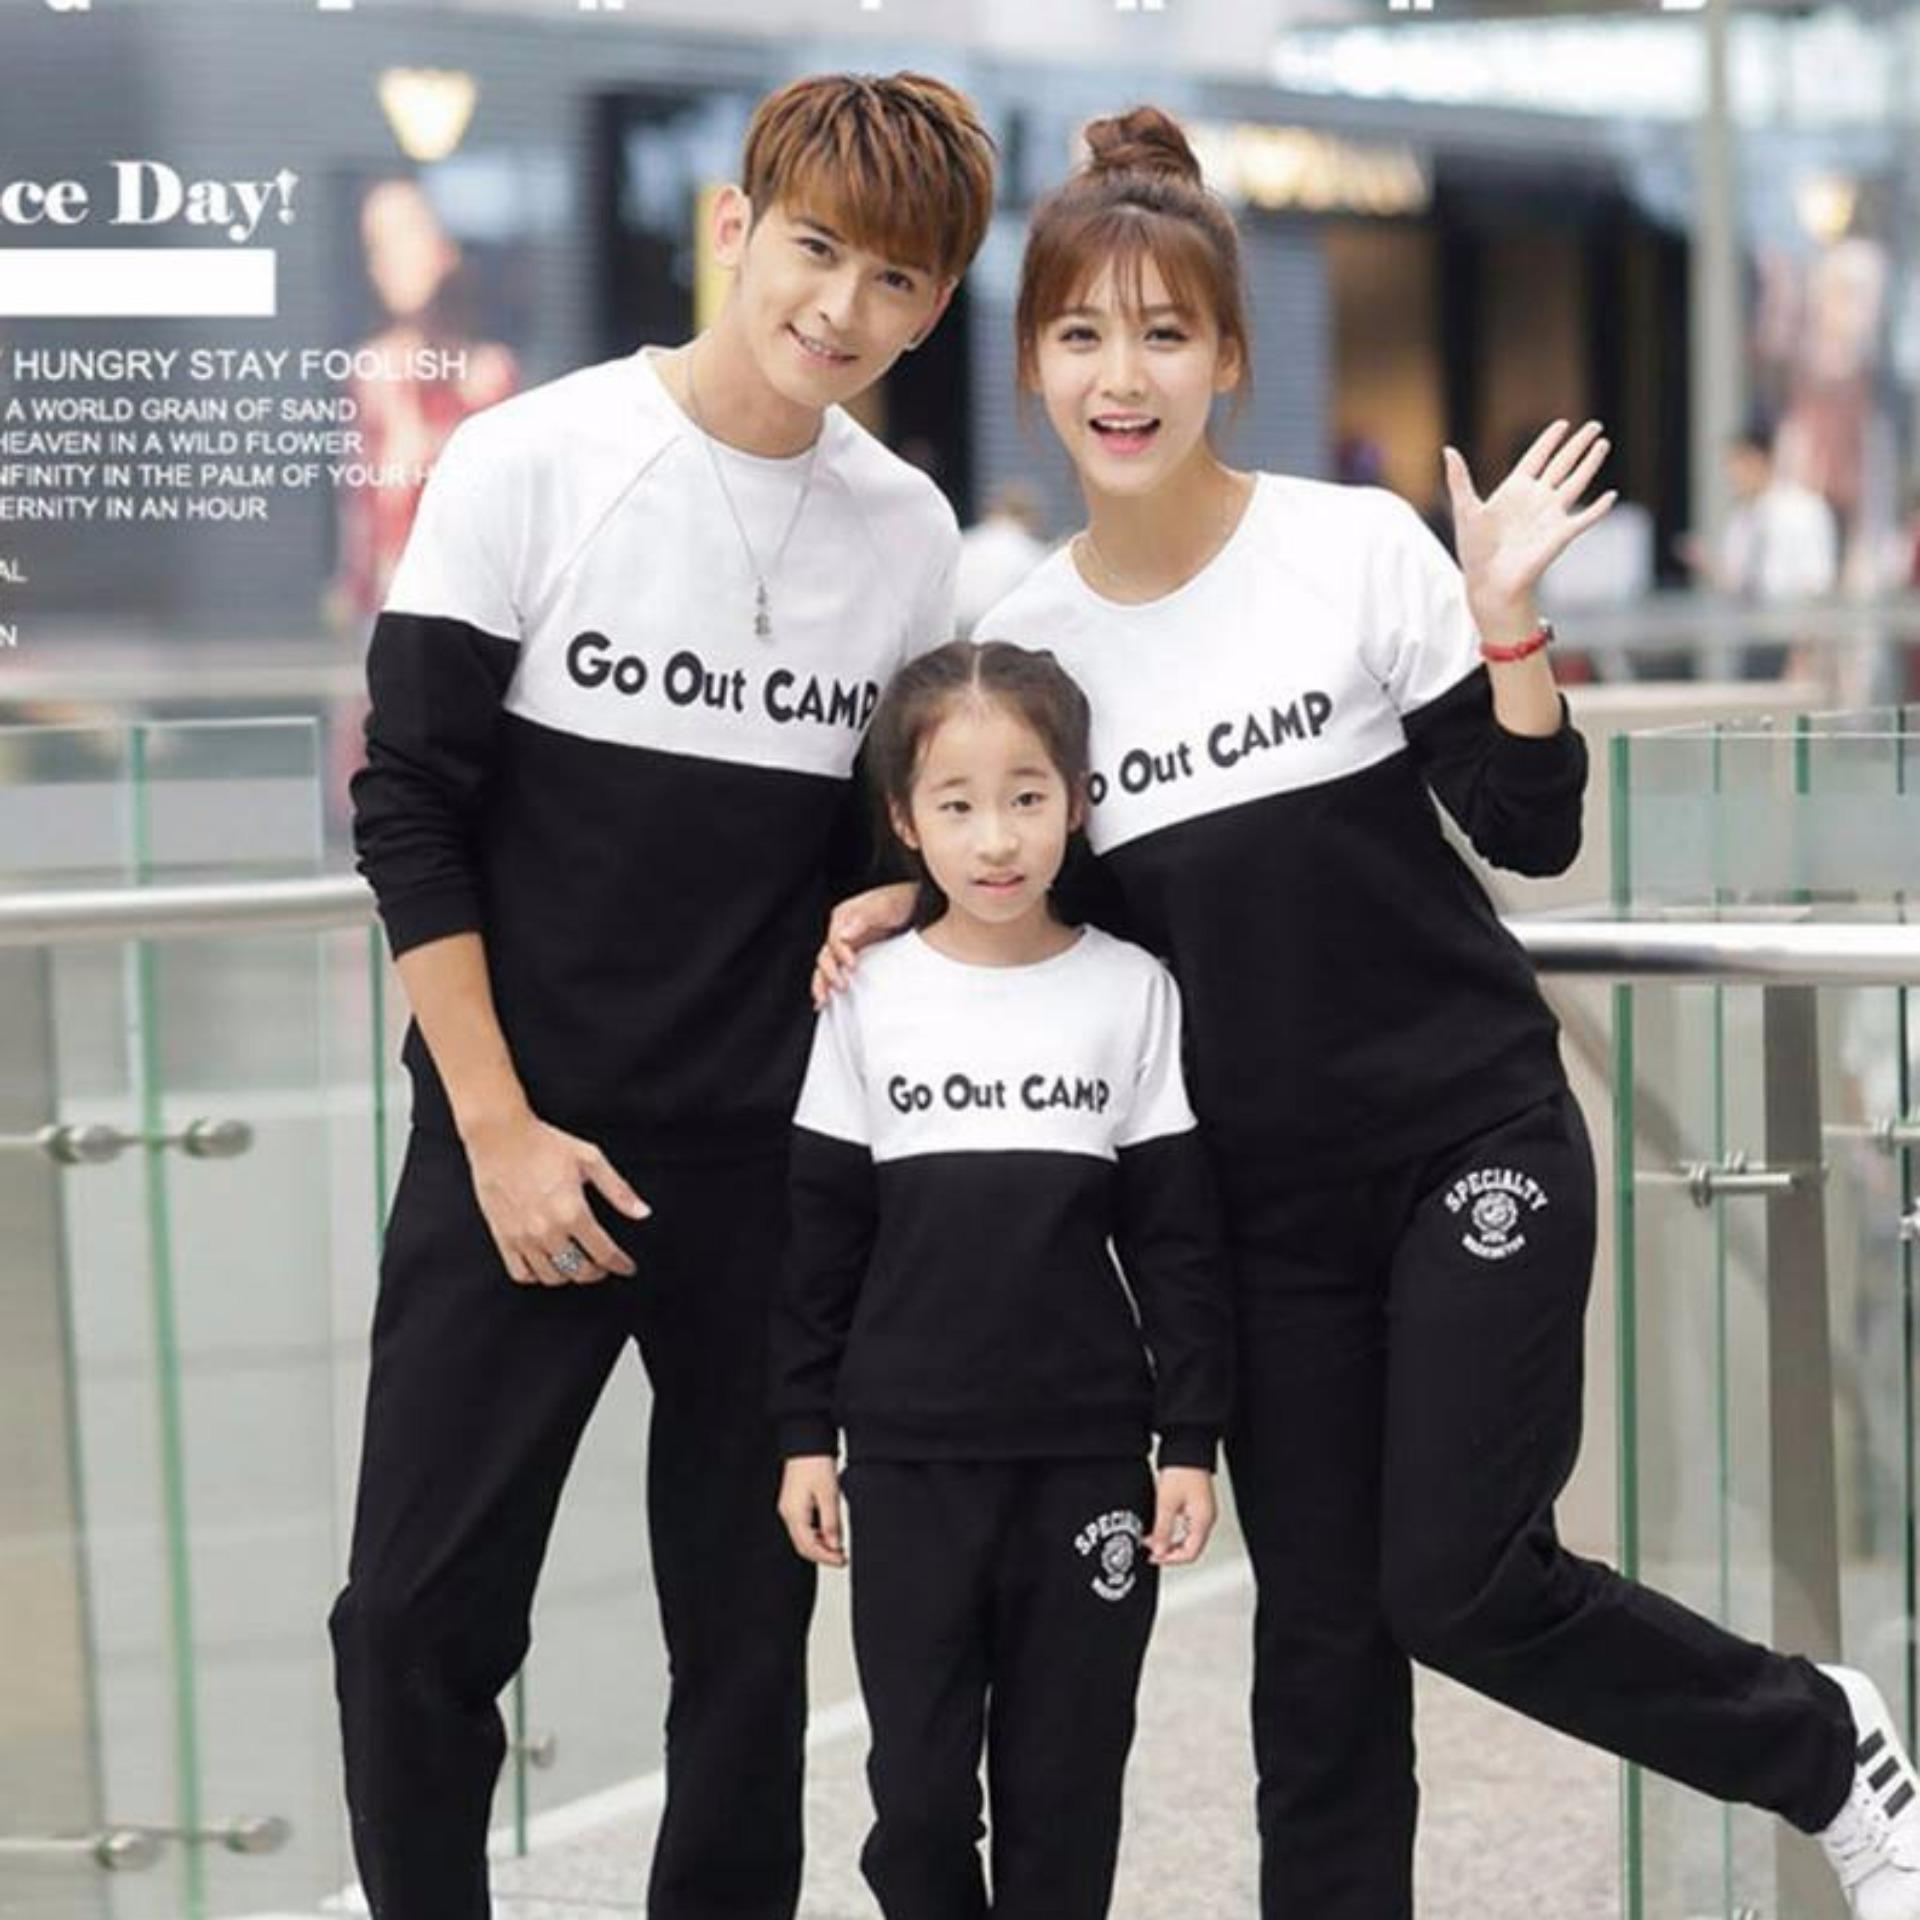 Spesifikasi Couplelover Sweater Family Couple Go Out Camp Hitam Putih Lp Ayah Ibu Anak Family Couple Sweater Family Baju Kembaran Sweater Keluarga Couplelover